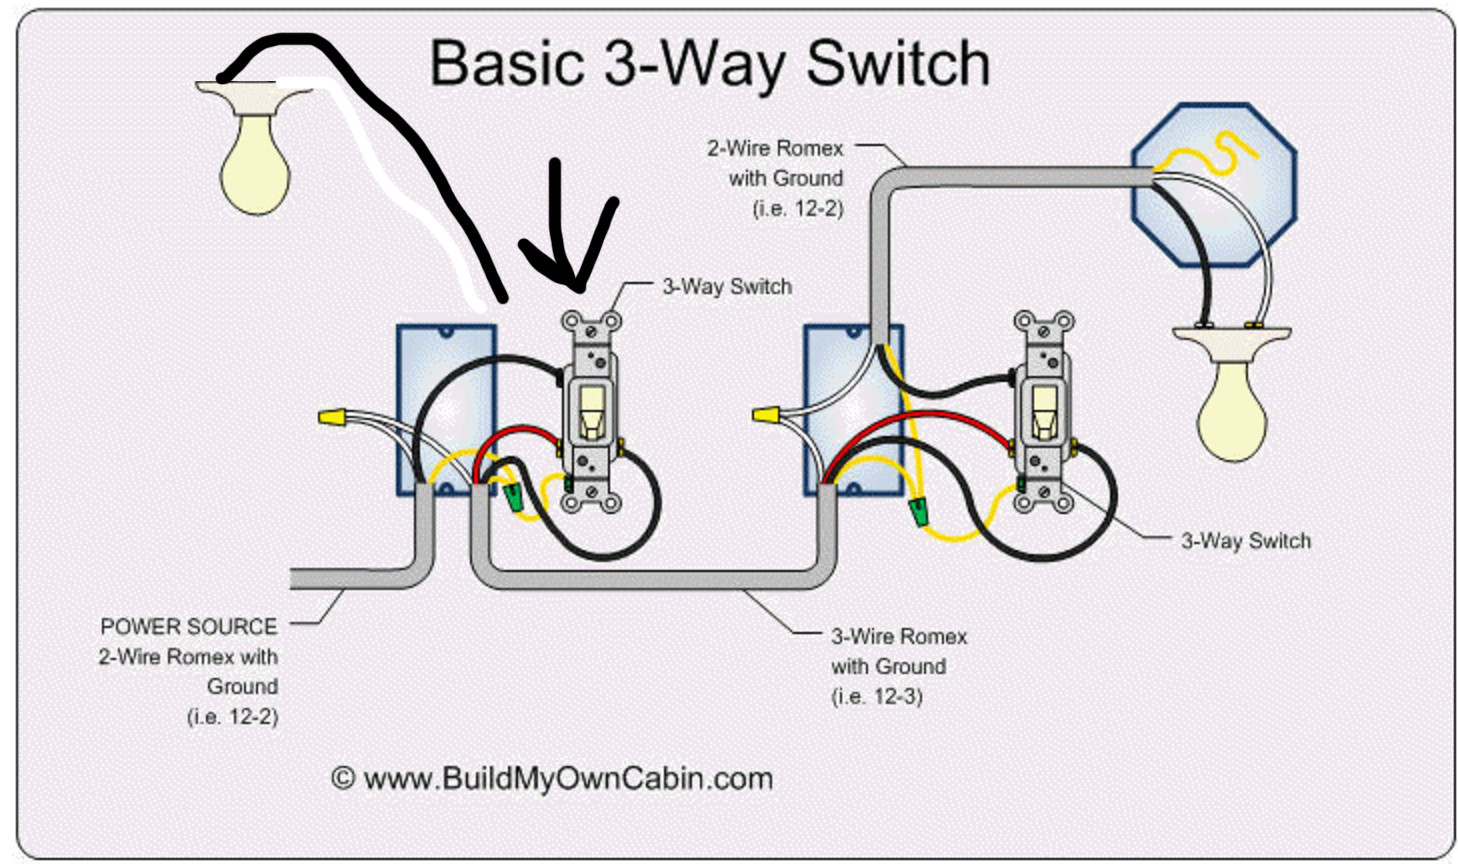 3 way switch wiring diagram power to light human long bone lighting additional a